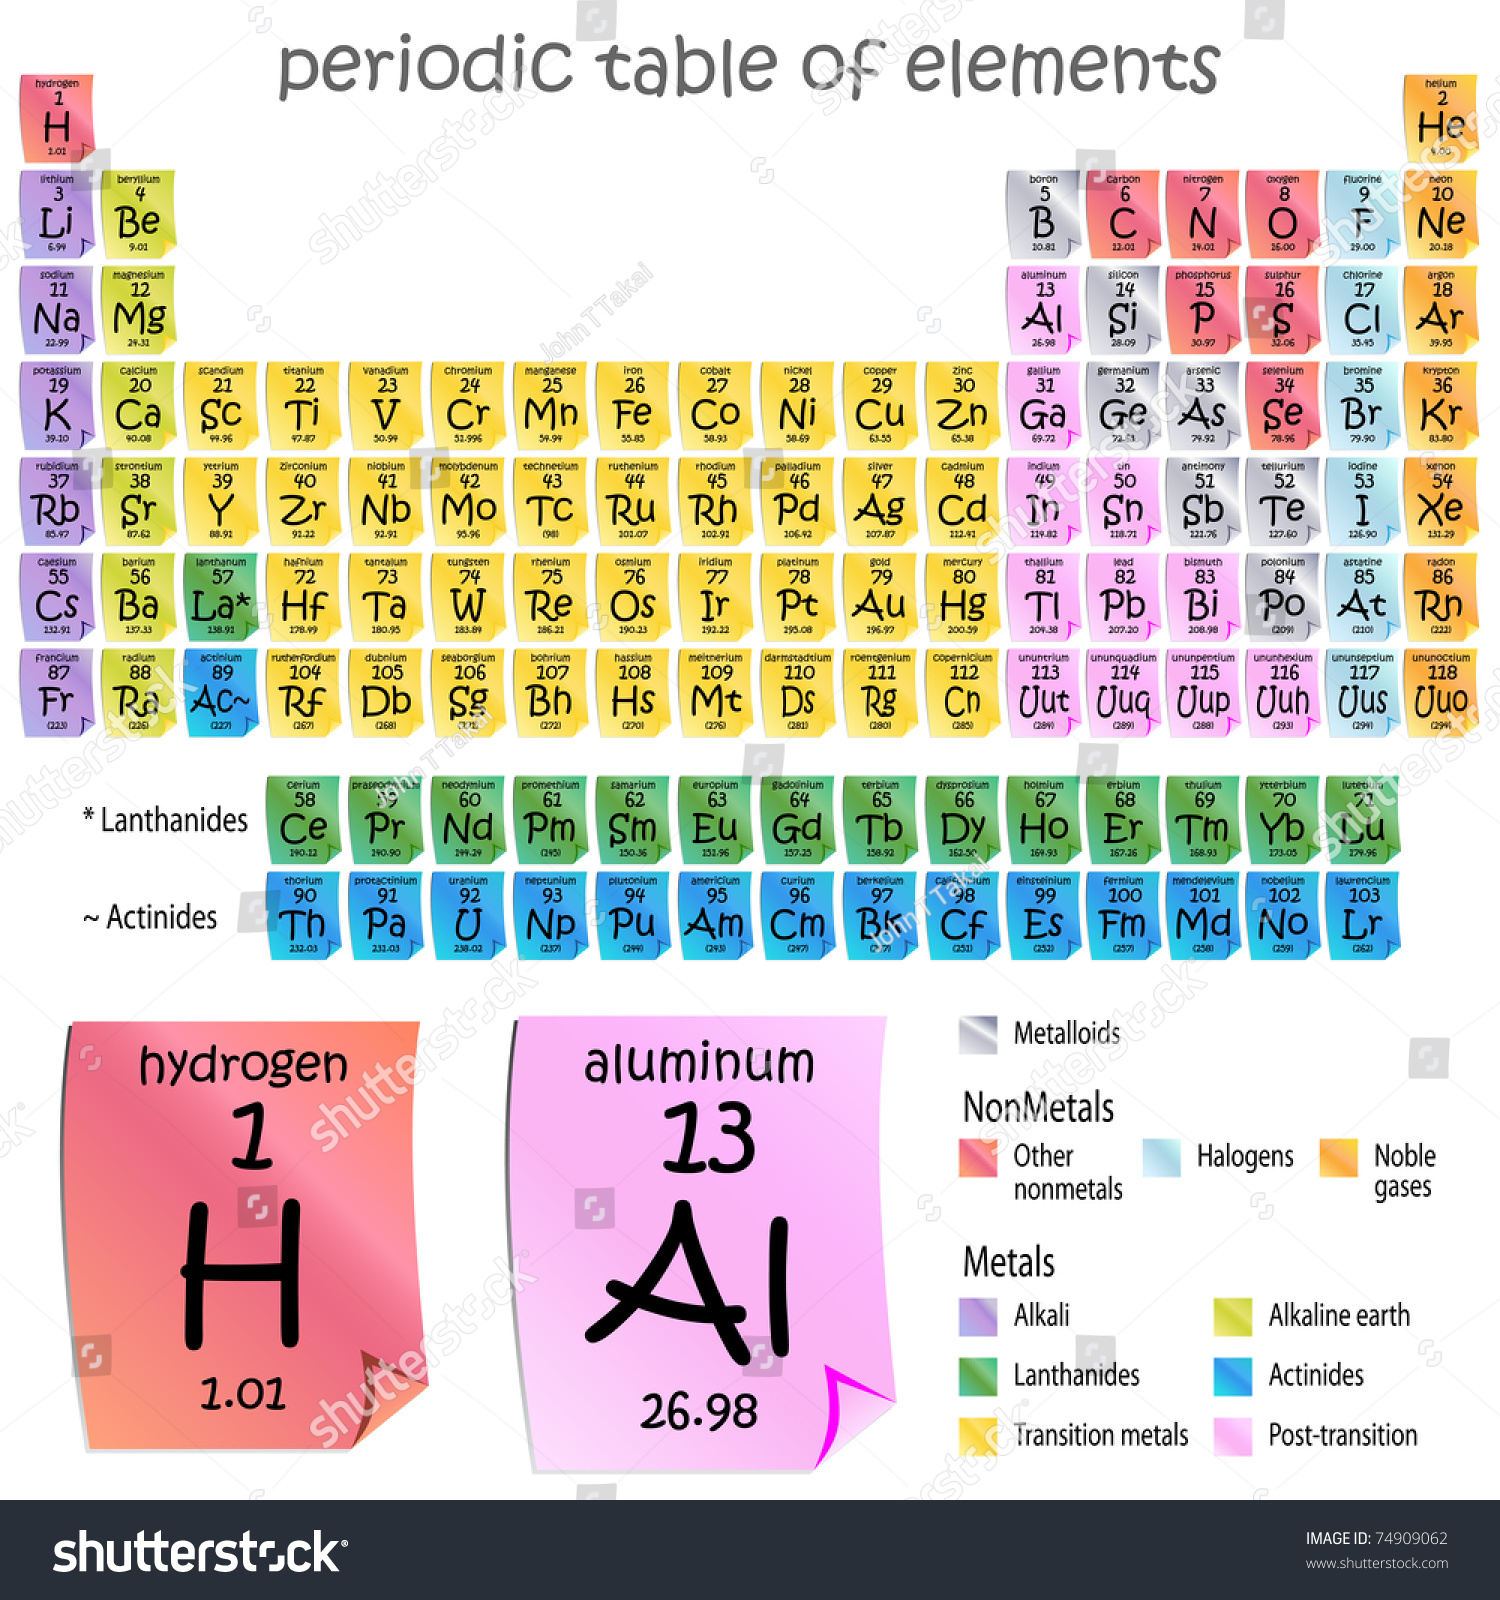 Image periodic table elements sticky note stock illustration an image of a periodic table of elements sticky note style gamestrikefo Images